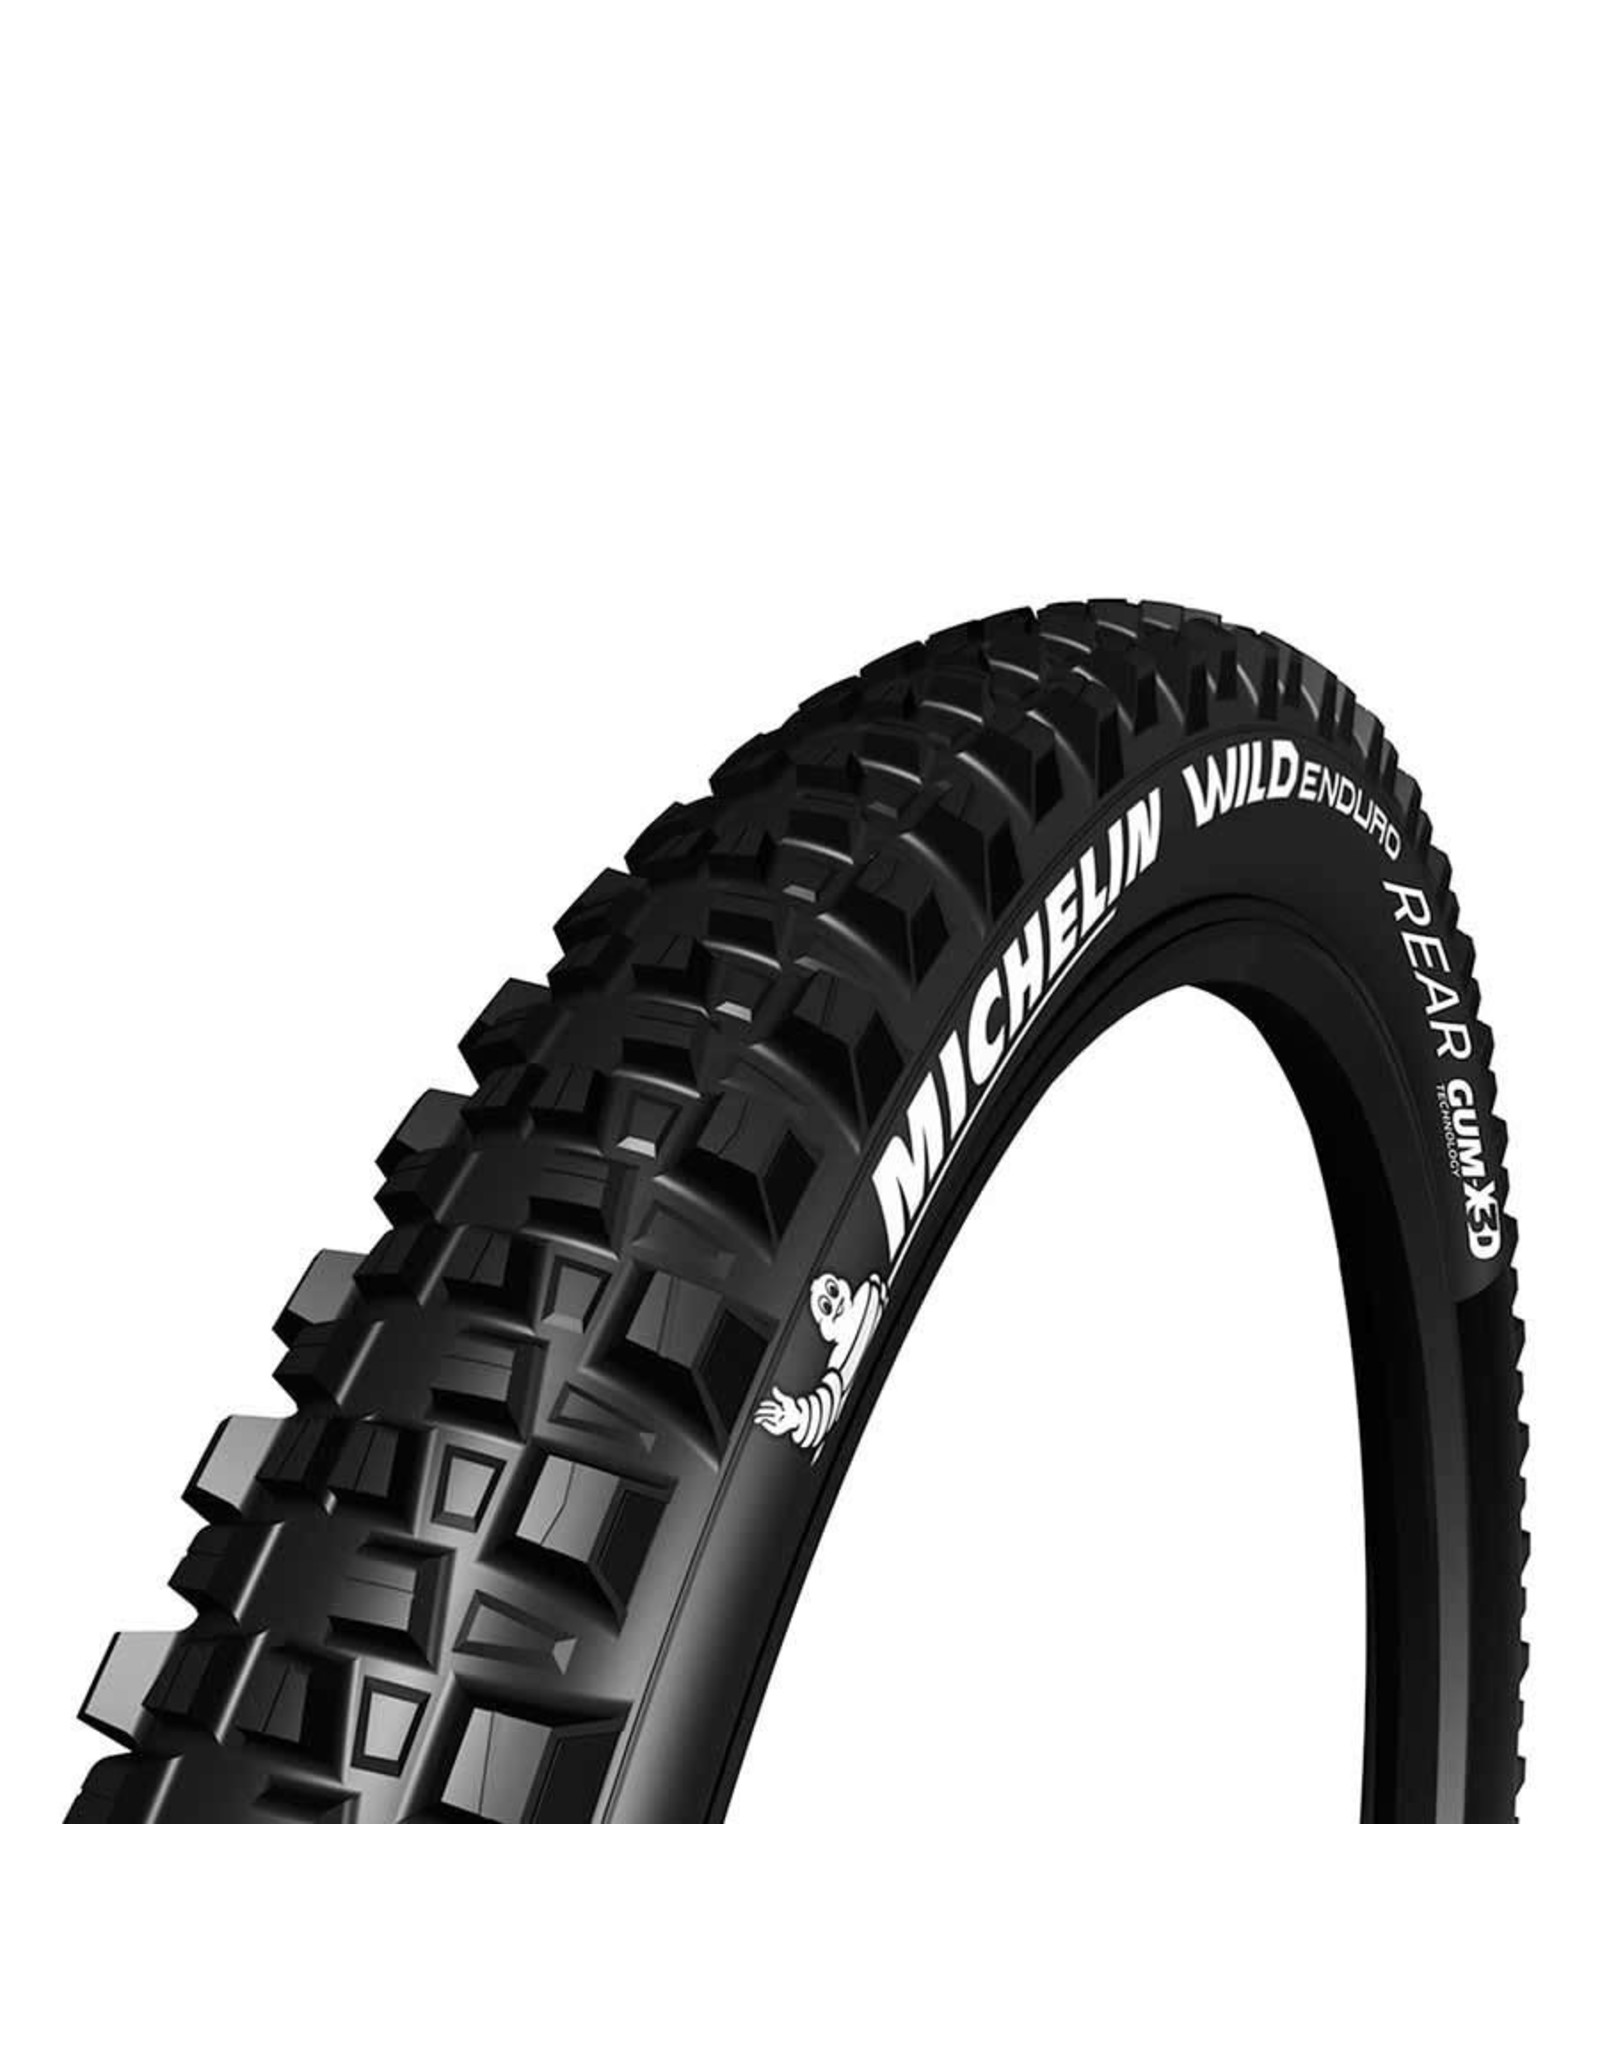 Michelin Wild Enduro Rear, Tire, 29''x2.40, Folding, Tubeless Ready, GUM-X, GravityShield, 60TPI, Black